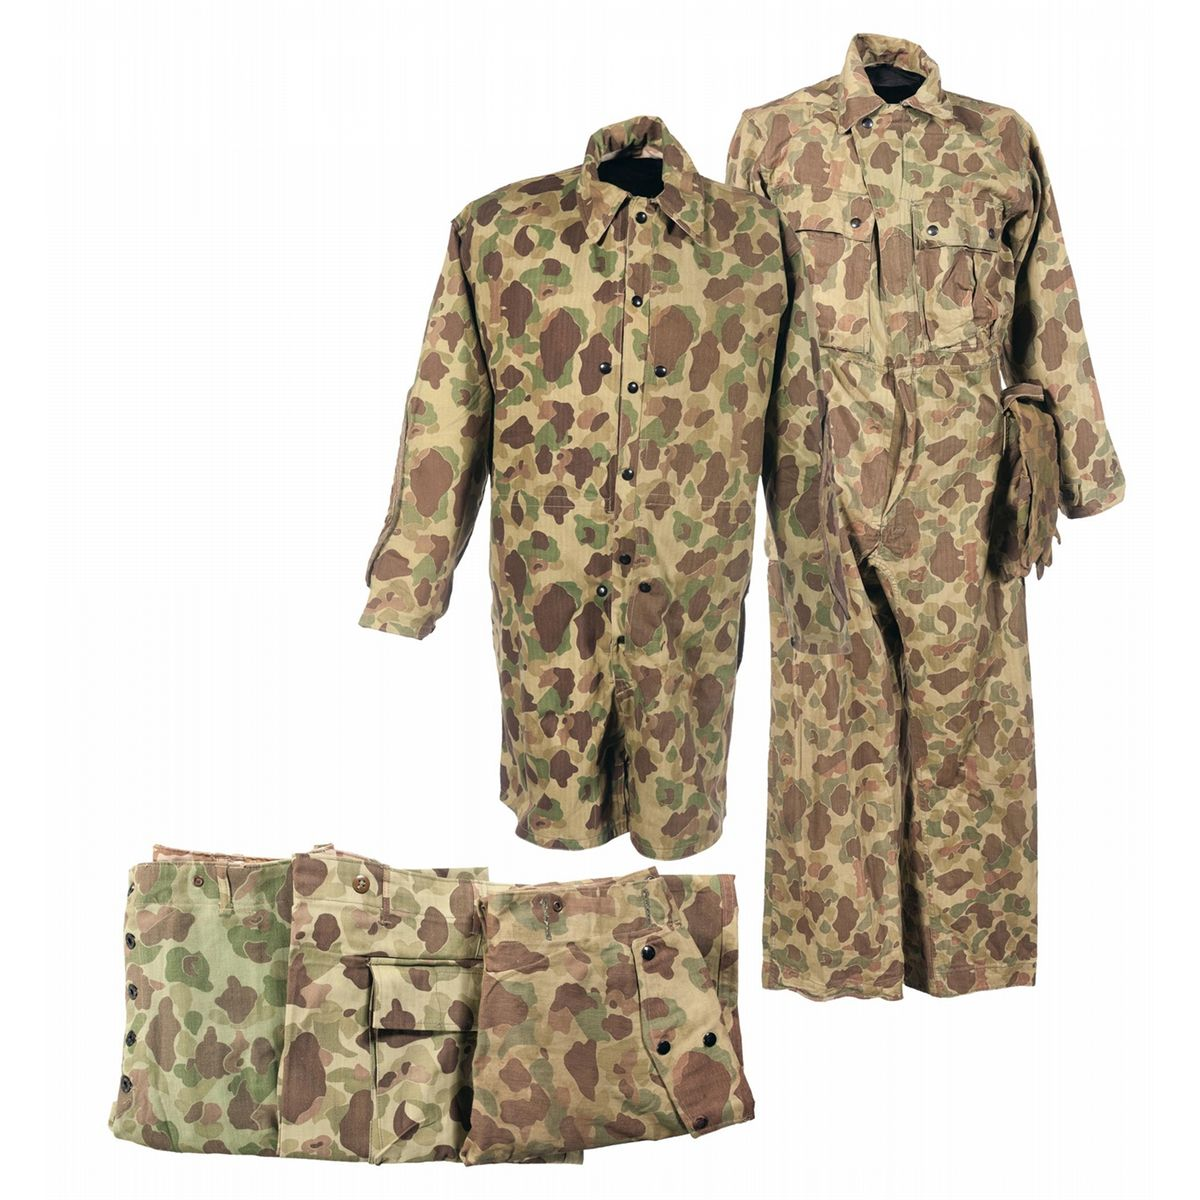 World war ii us marine pattern forest camouflage utility uniform world war ii us marine pattern forest camouflage utility uniform pieces publicscrutiny Choice Image